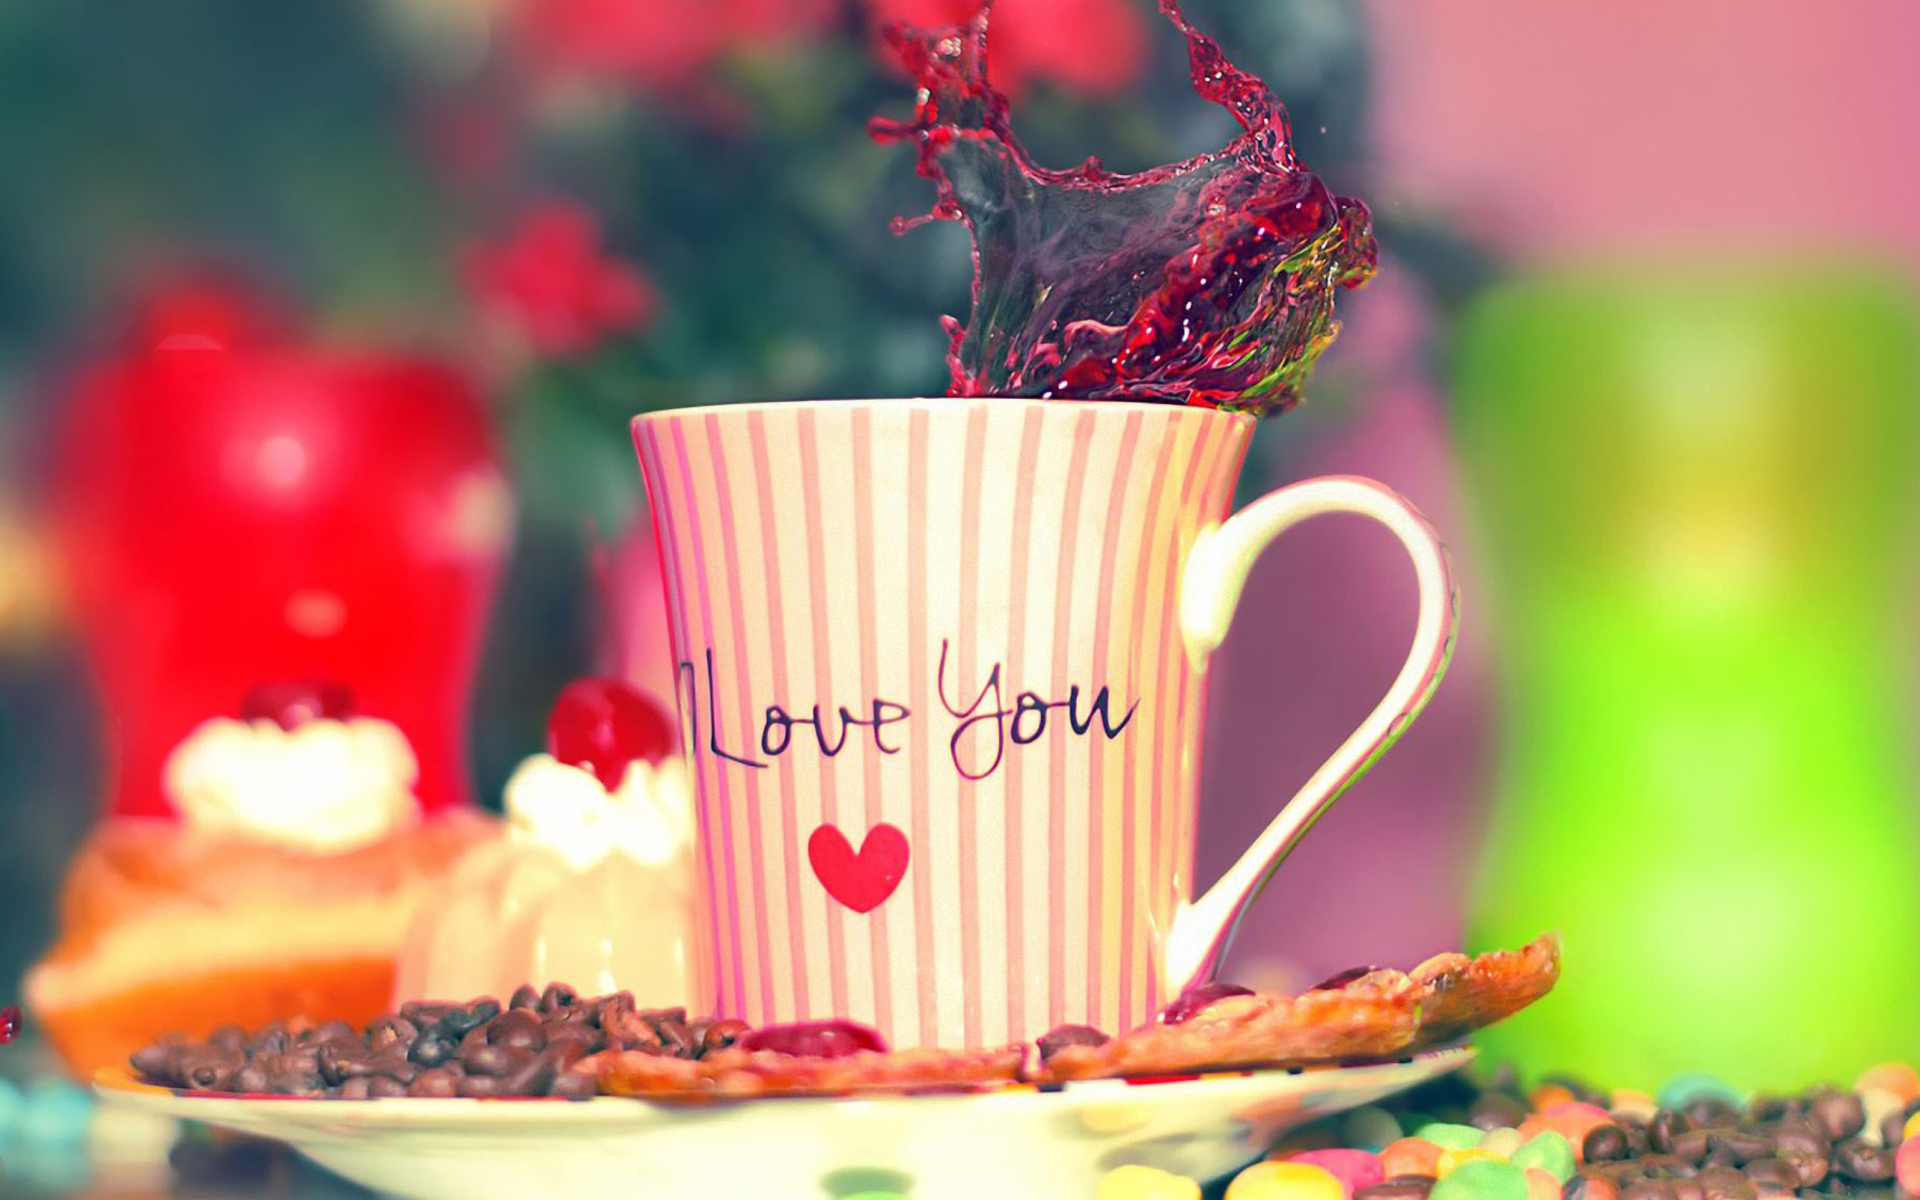 Good Morning! I Love You Wallpaper for Widescreen Desktop Pc 1920x1080 Full HD